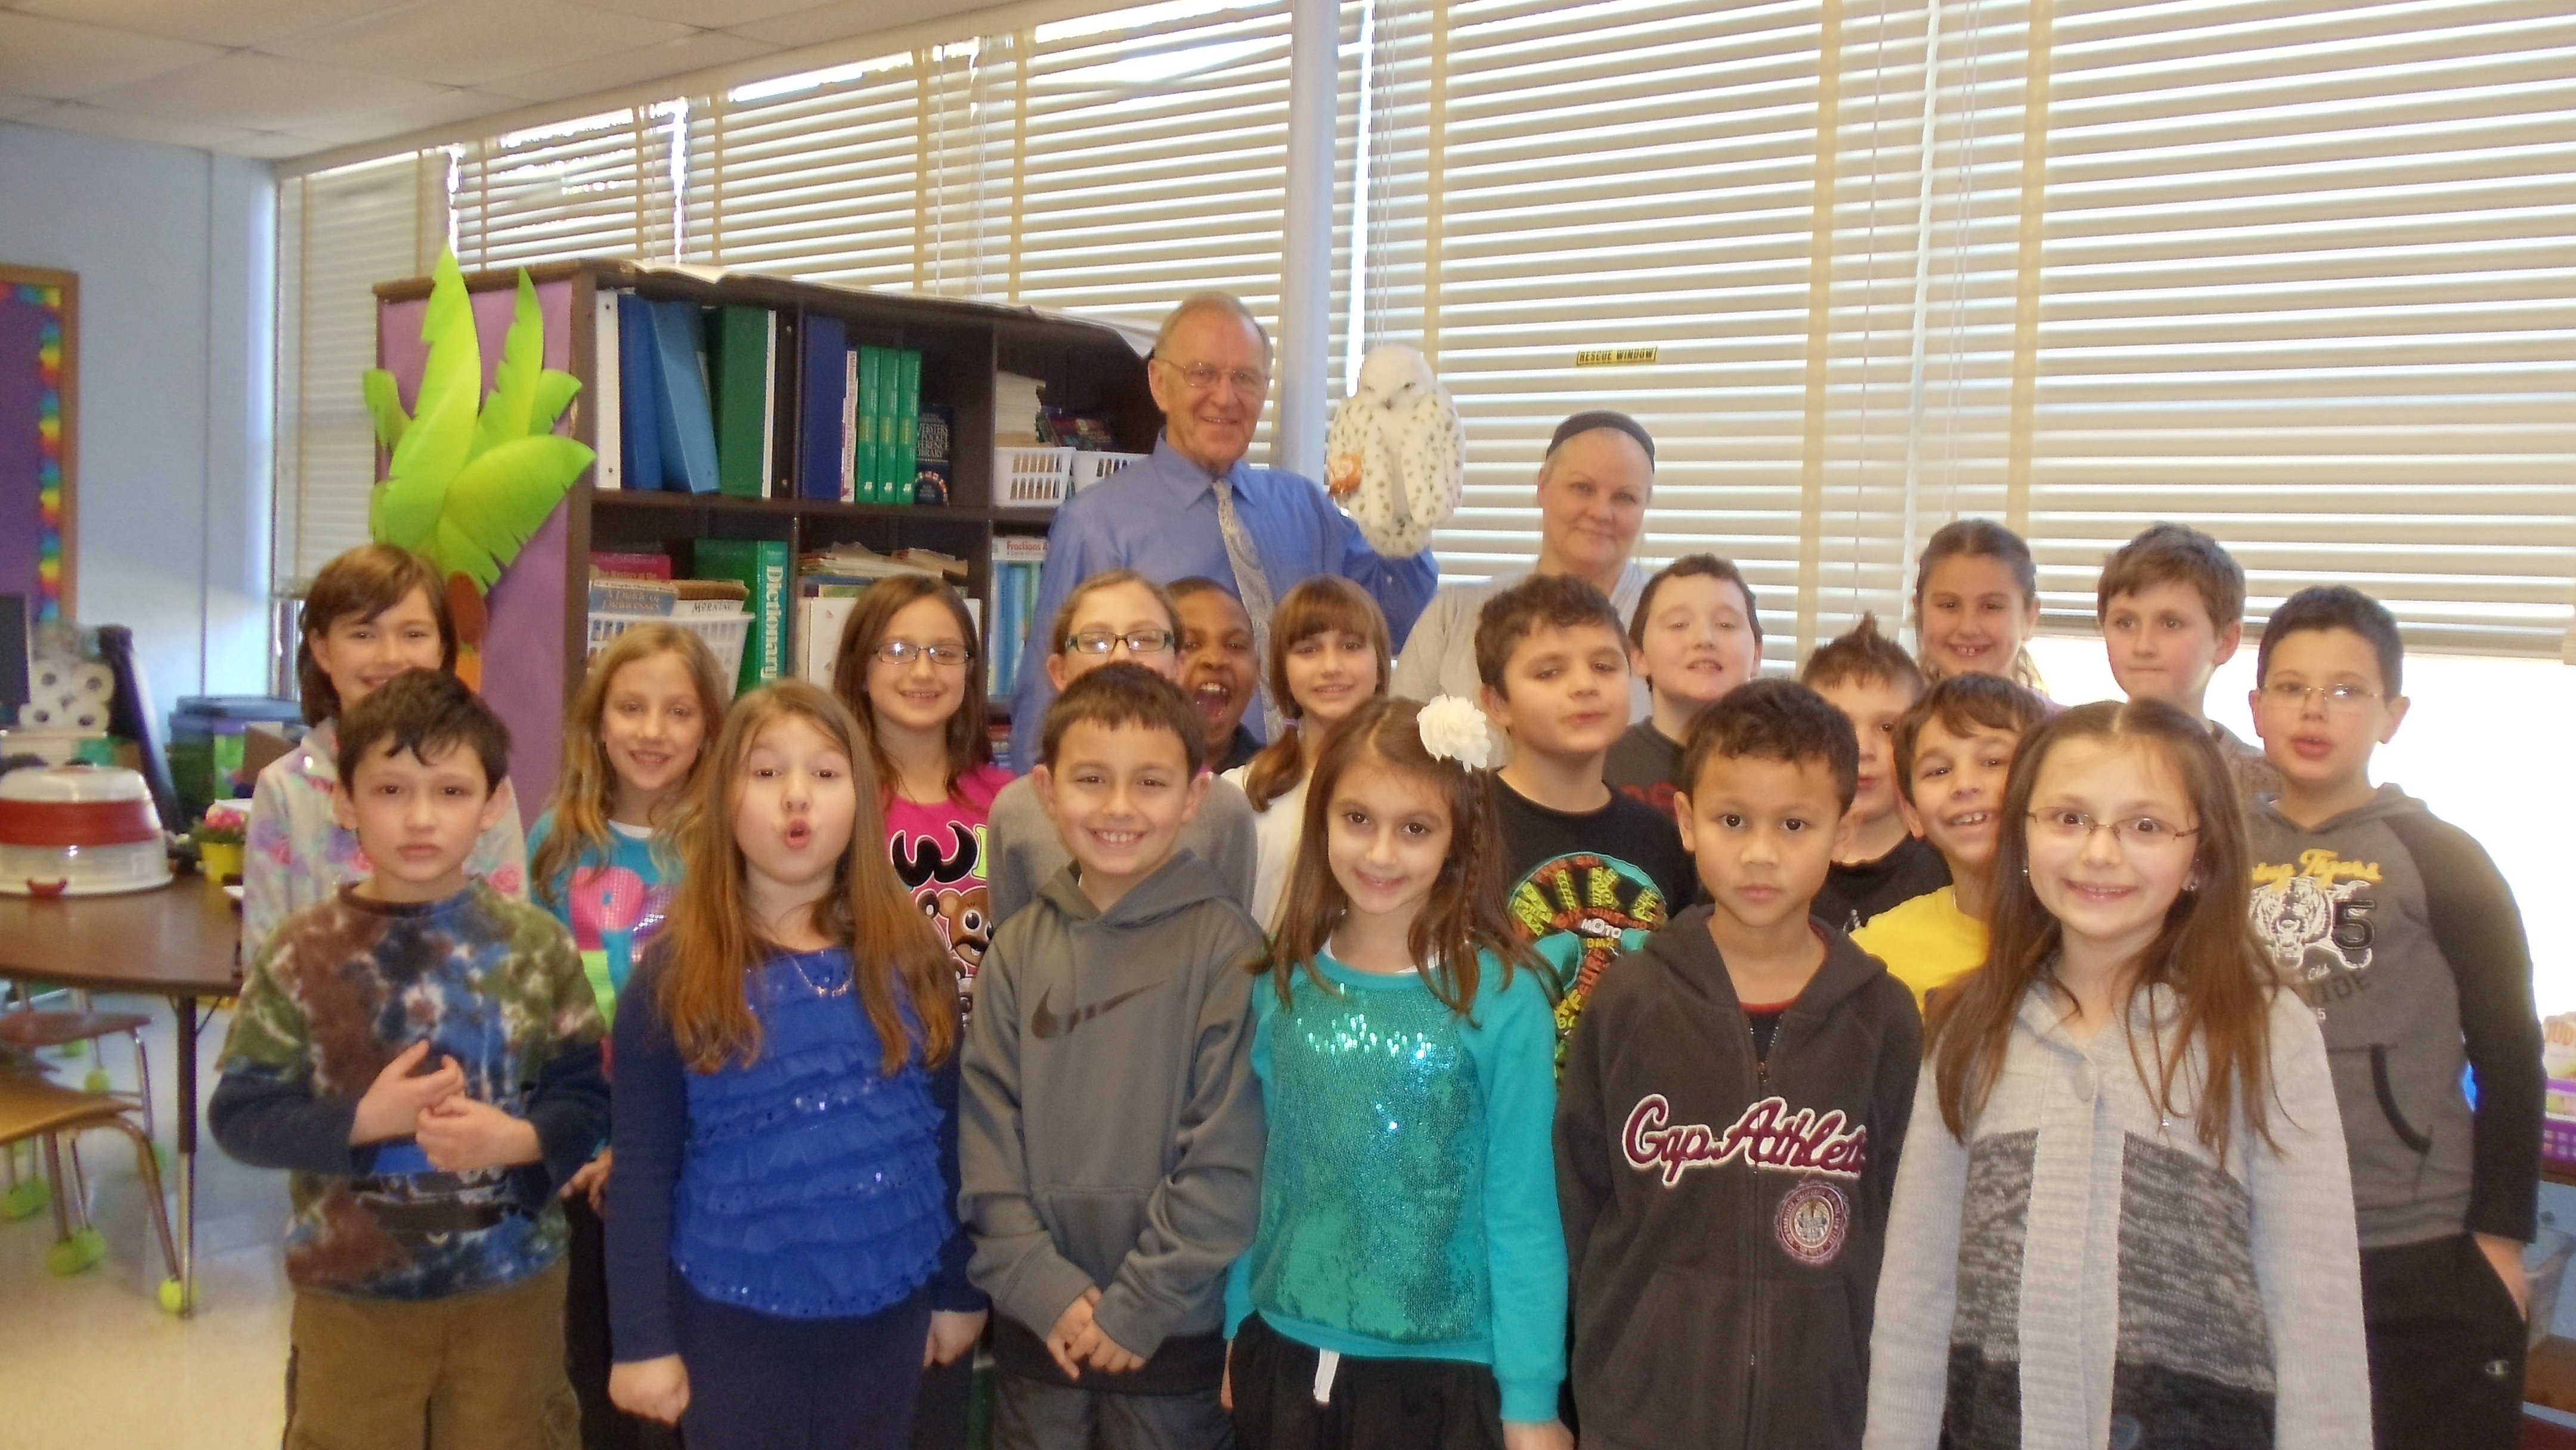 In January, Assemblyman Dave McDonough (R,C,I-Merrick) visited Mrs. Armstrong�s 3rd grade class at Old Mill Road Elementary School as part of their Parents As Reading Partners (PARP) program. As part of the reading program, Assemblyman McDonough shared �Owl Moon� by Jane Yolan with the students and discussed the importance of reading.